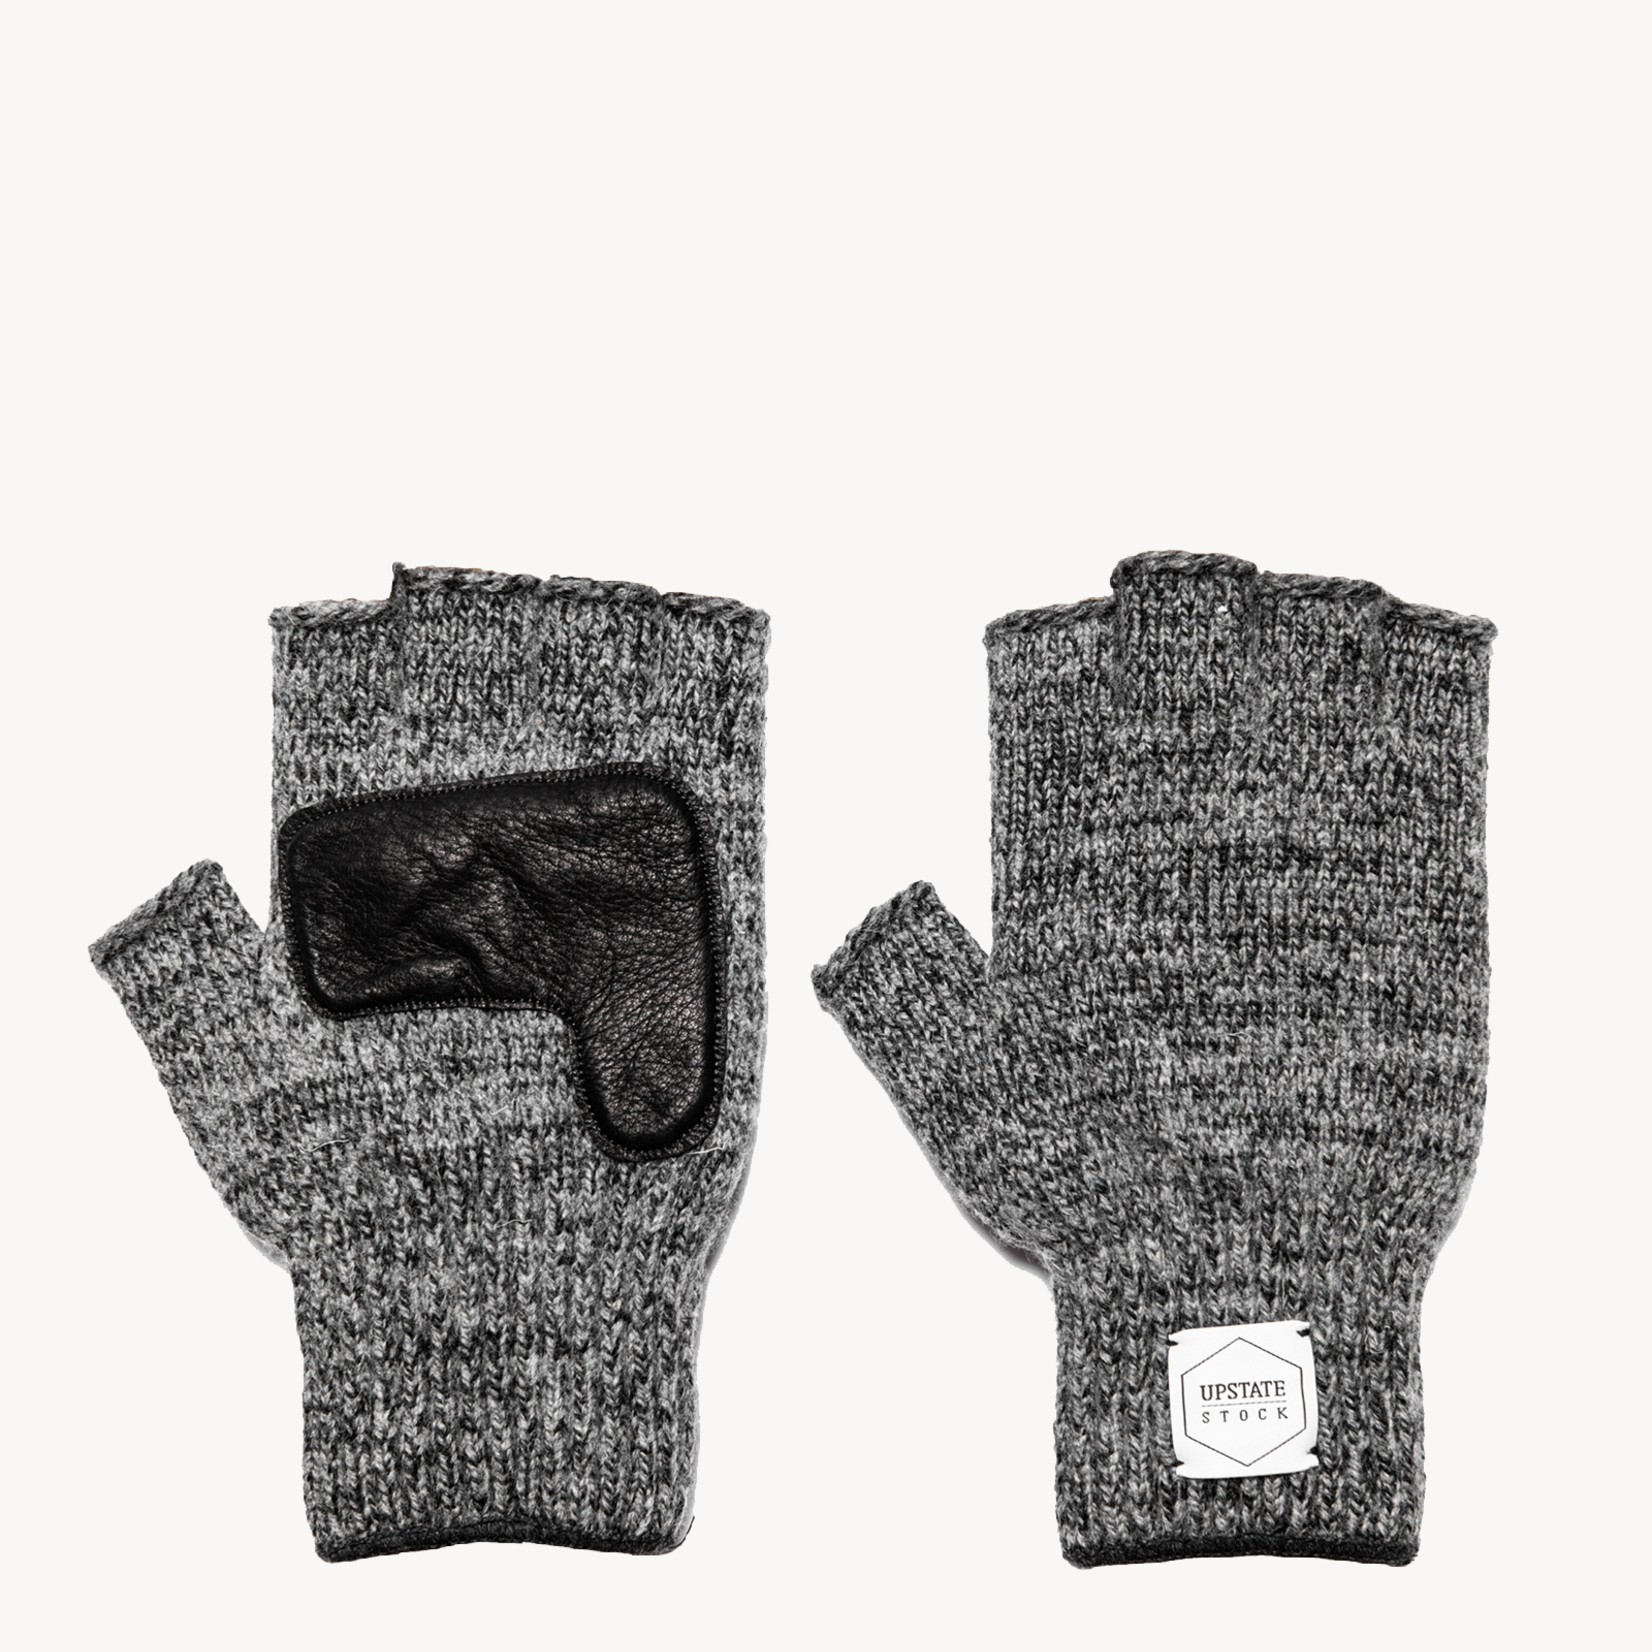 Upstate Stock Upstate Stock Fingerless Charcoal with Black Deerskin